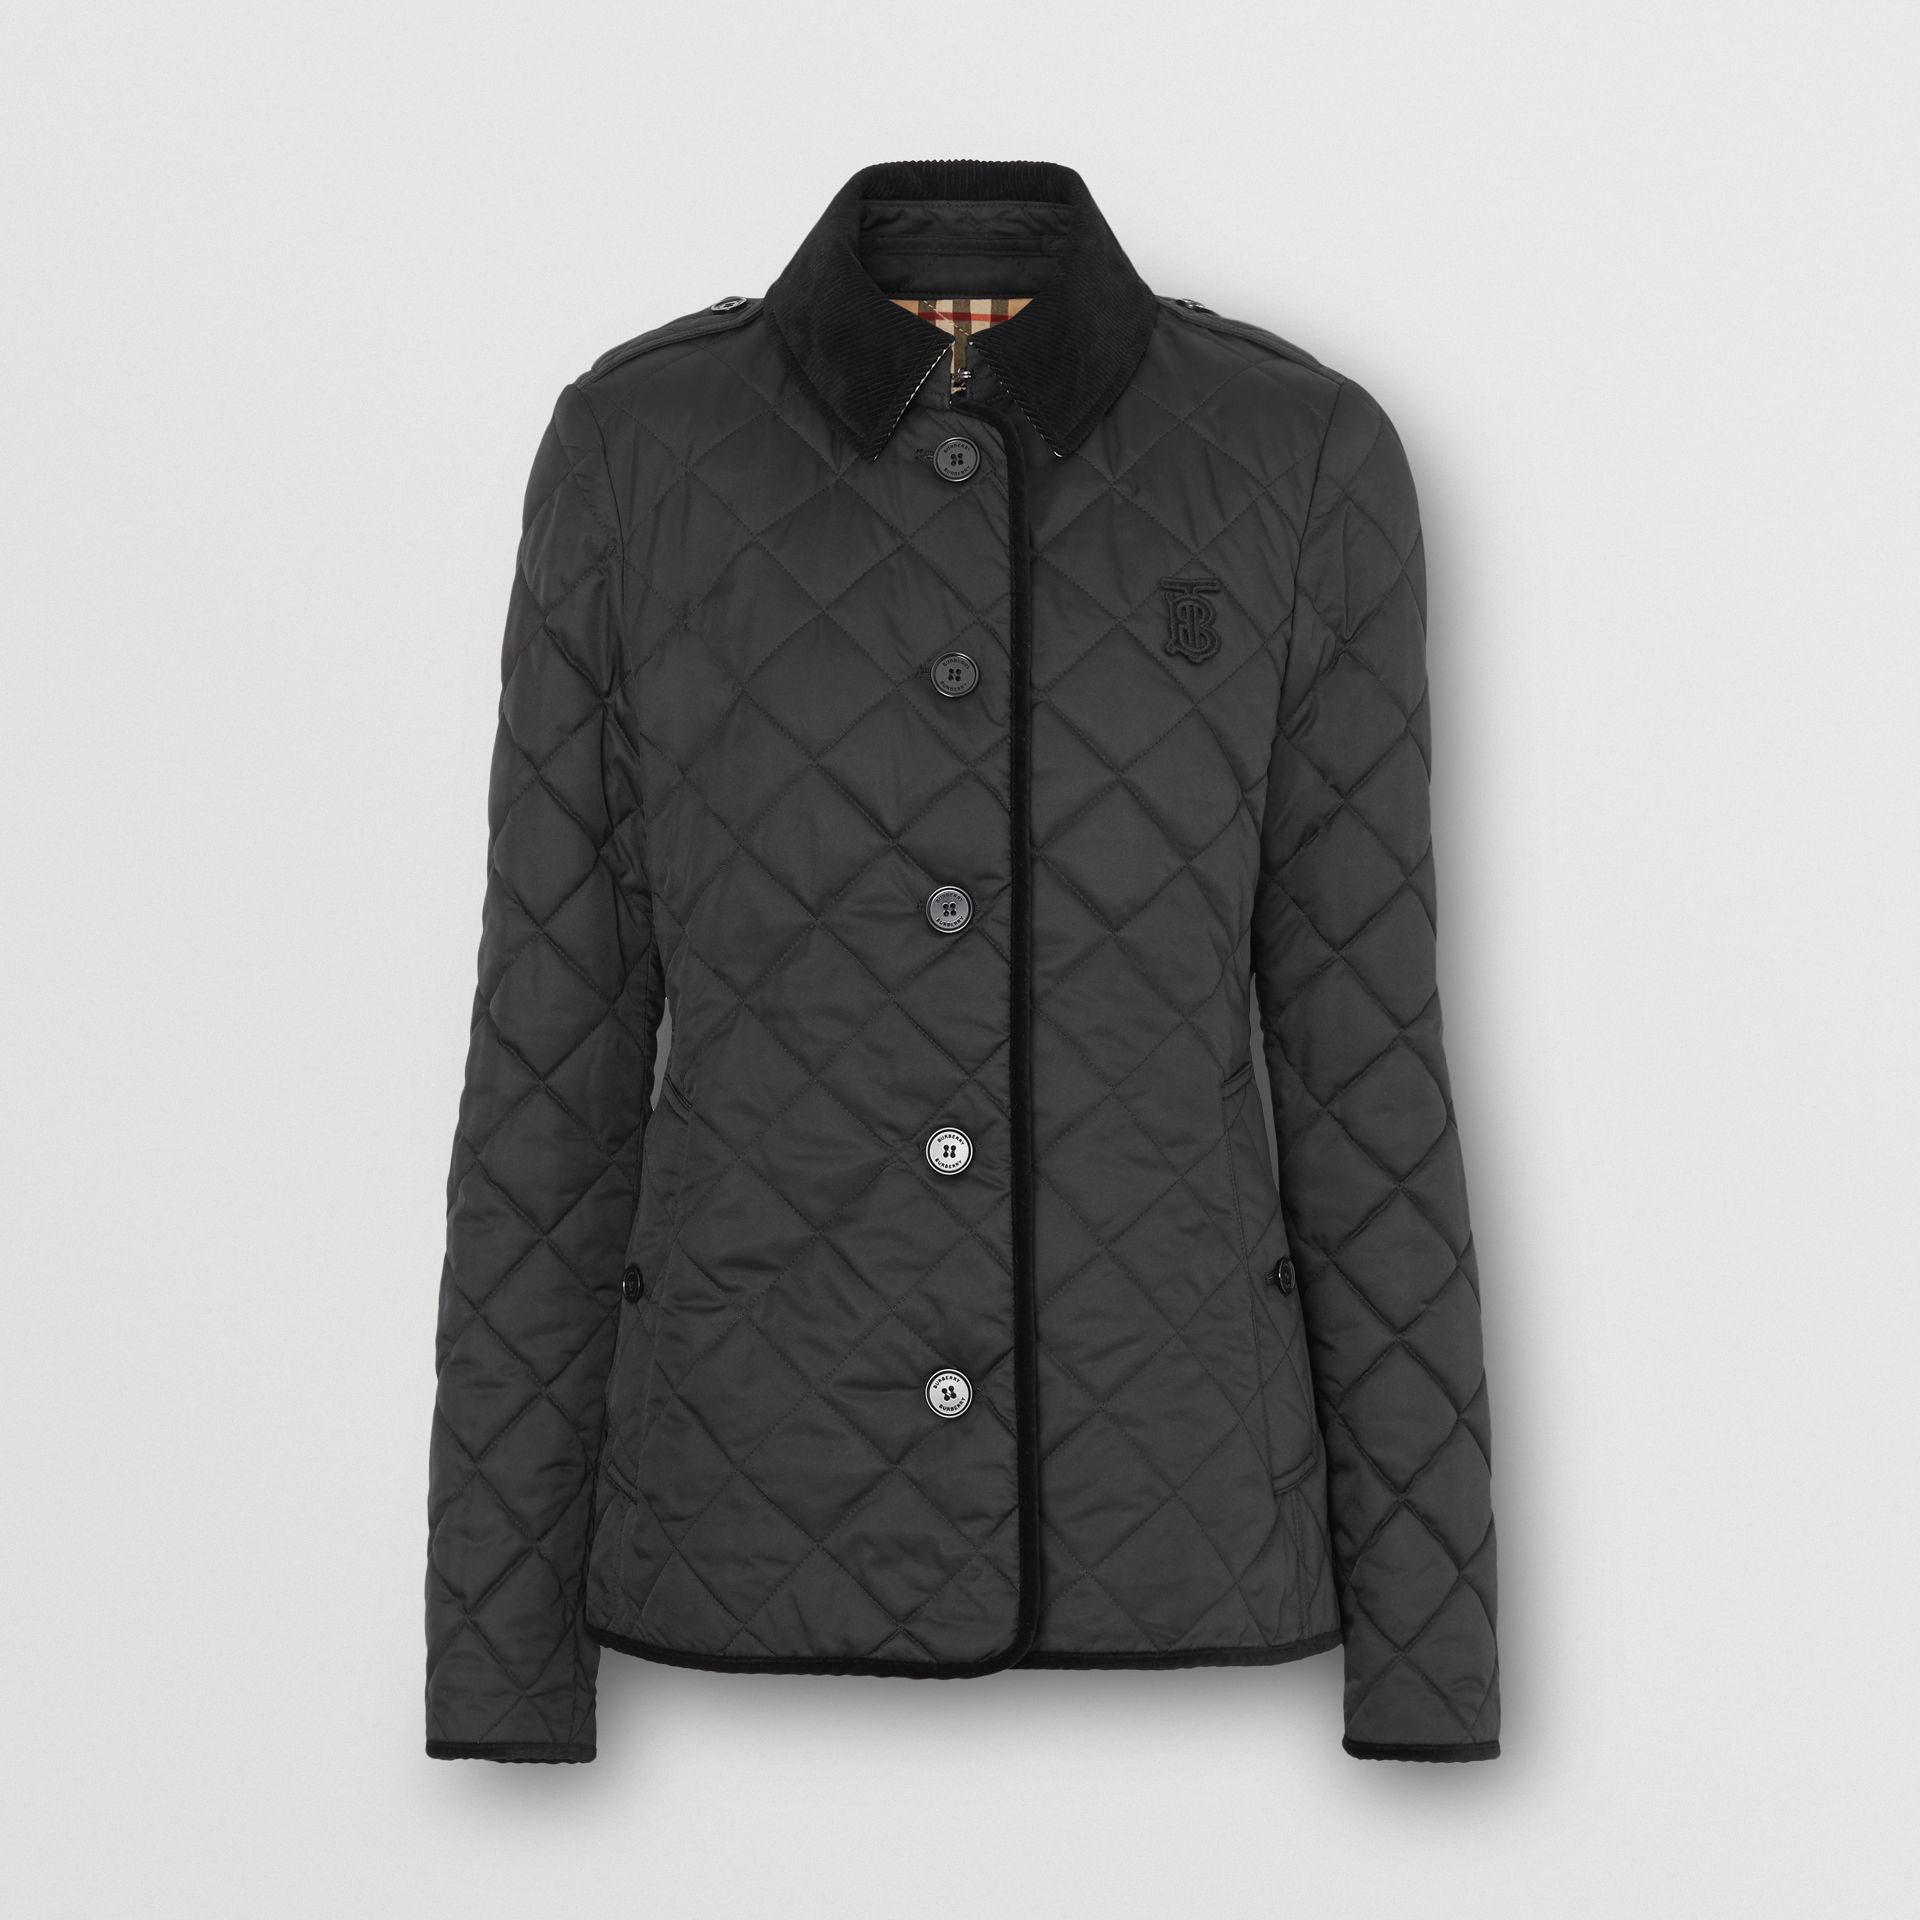 Monogram Motif Diamond Quilted Jacket in Black - Women | Burberry - gallery image 3